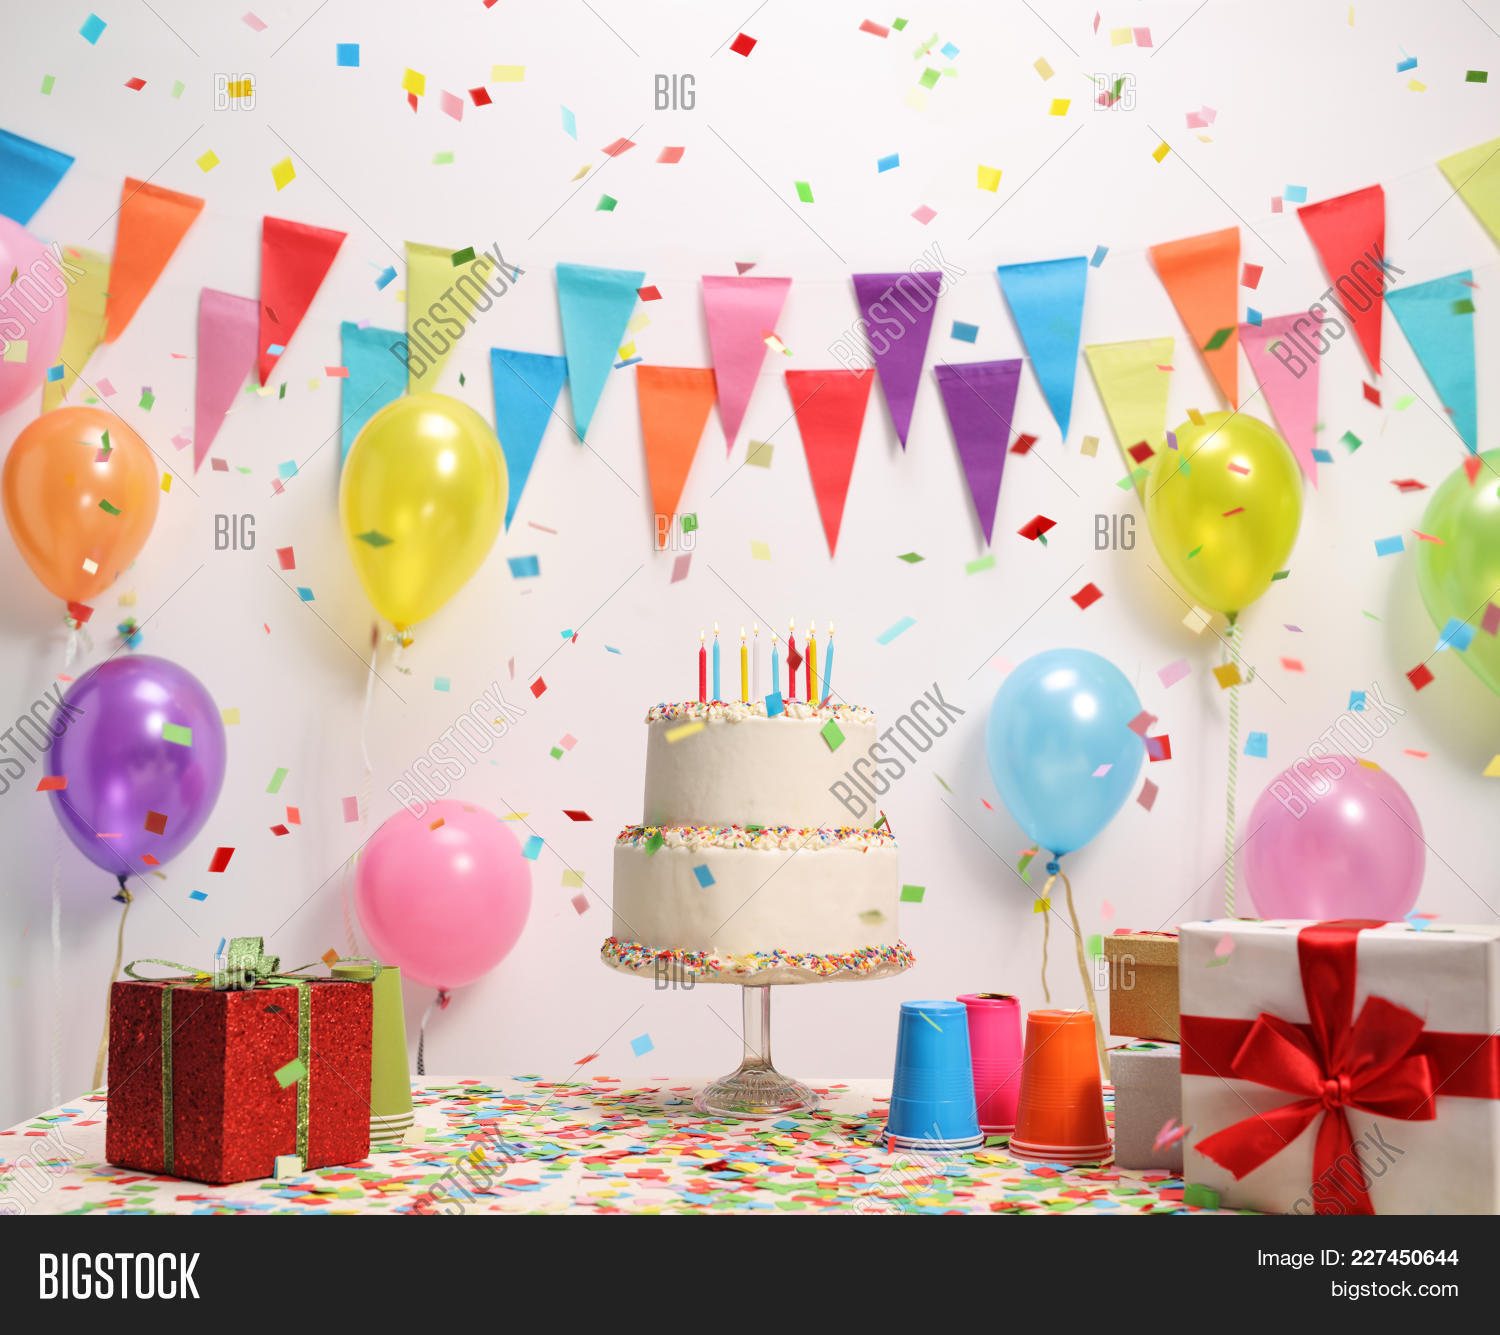 Birthday Cake On Table Image Photo Free Trial Bigstock